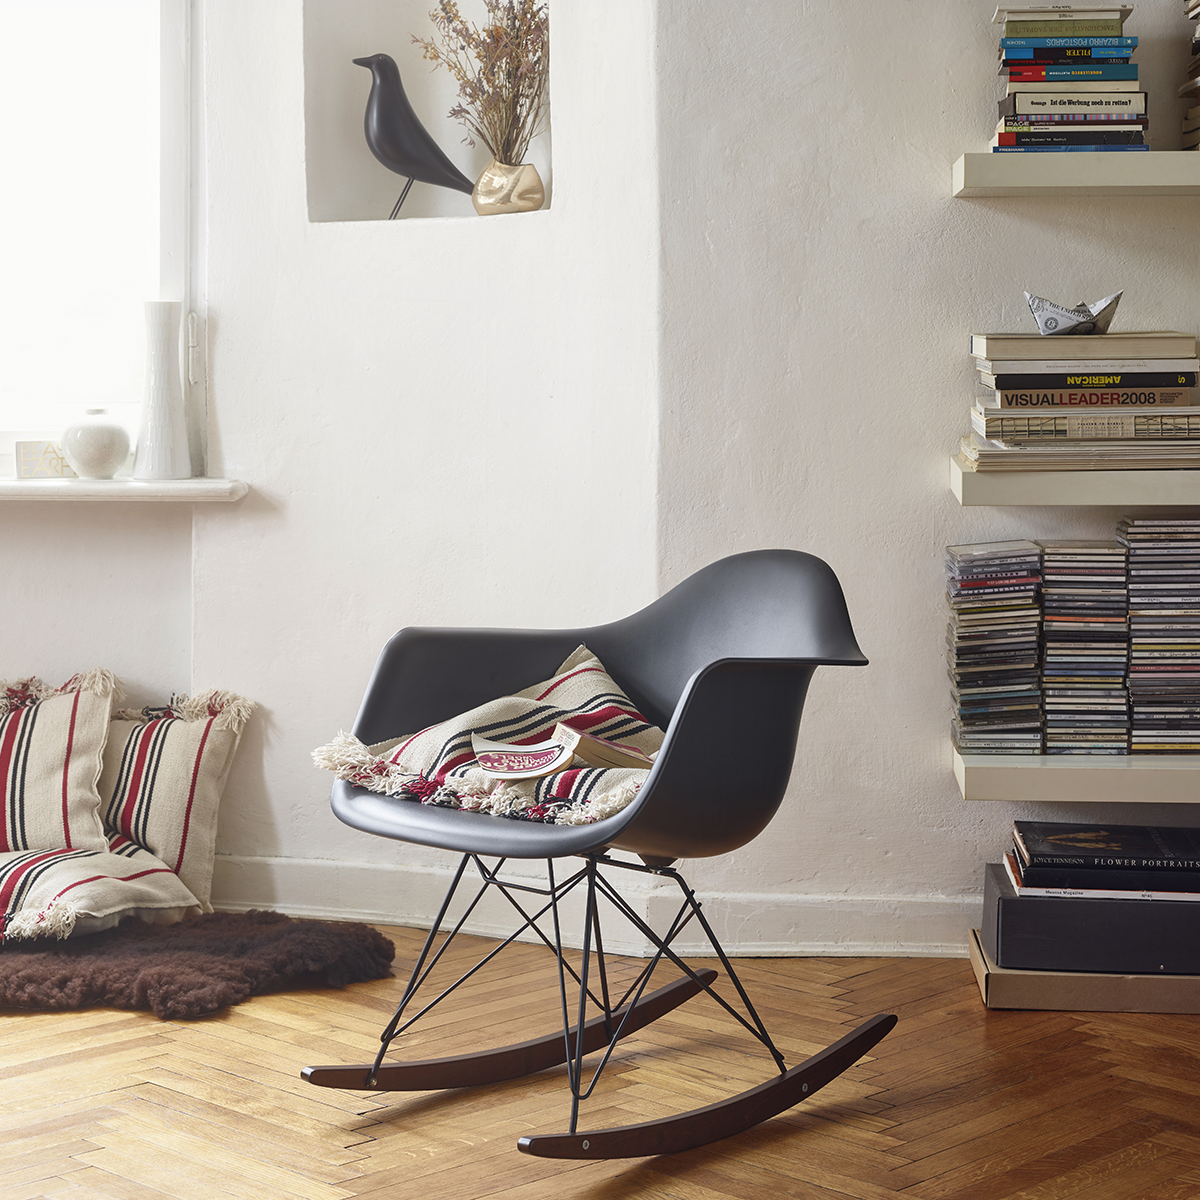 Vitra Eames Rar Rocking Chair Granite Grey Chrome Maple Eames Rocking Chair Eames Plastic Chair Rocking Chair